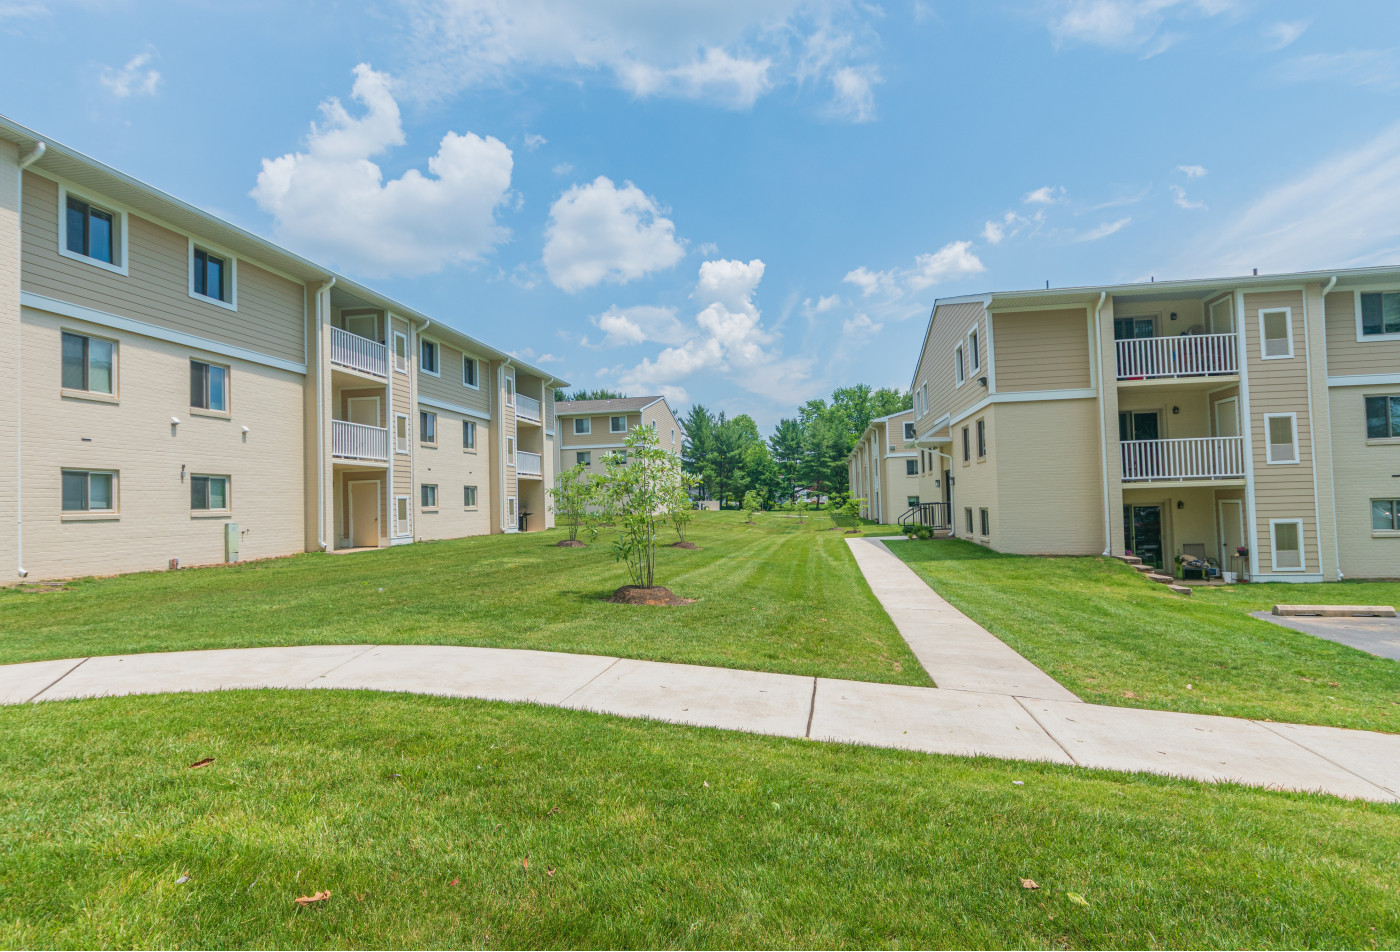 Malvern Pa Apartments | Caln East Apartments